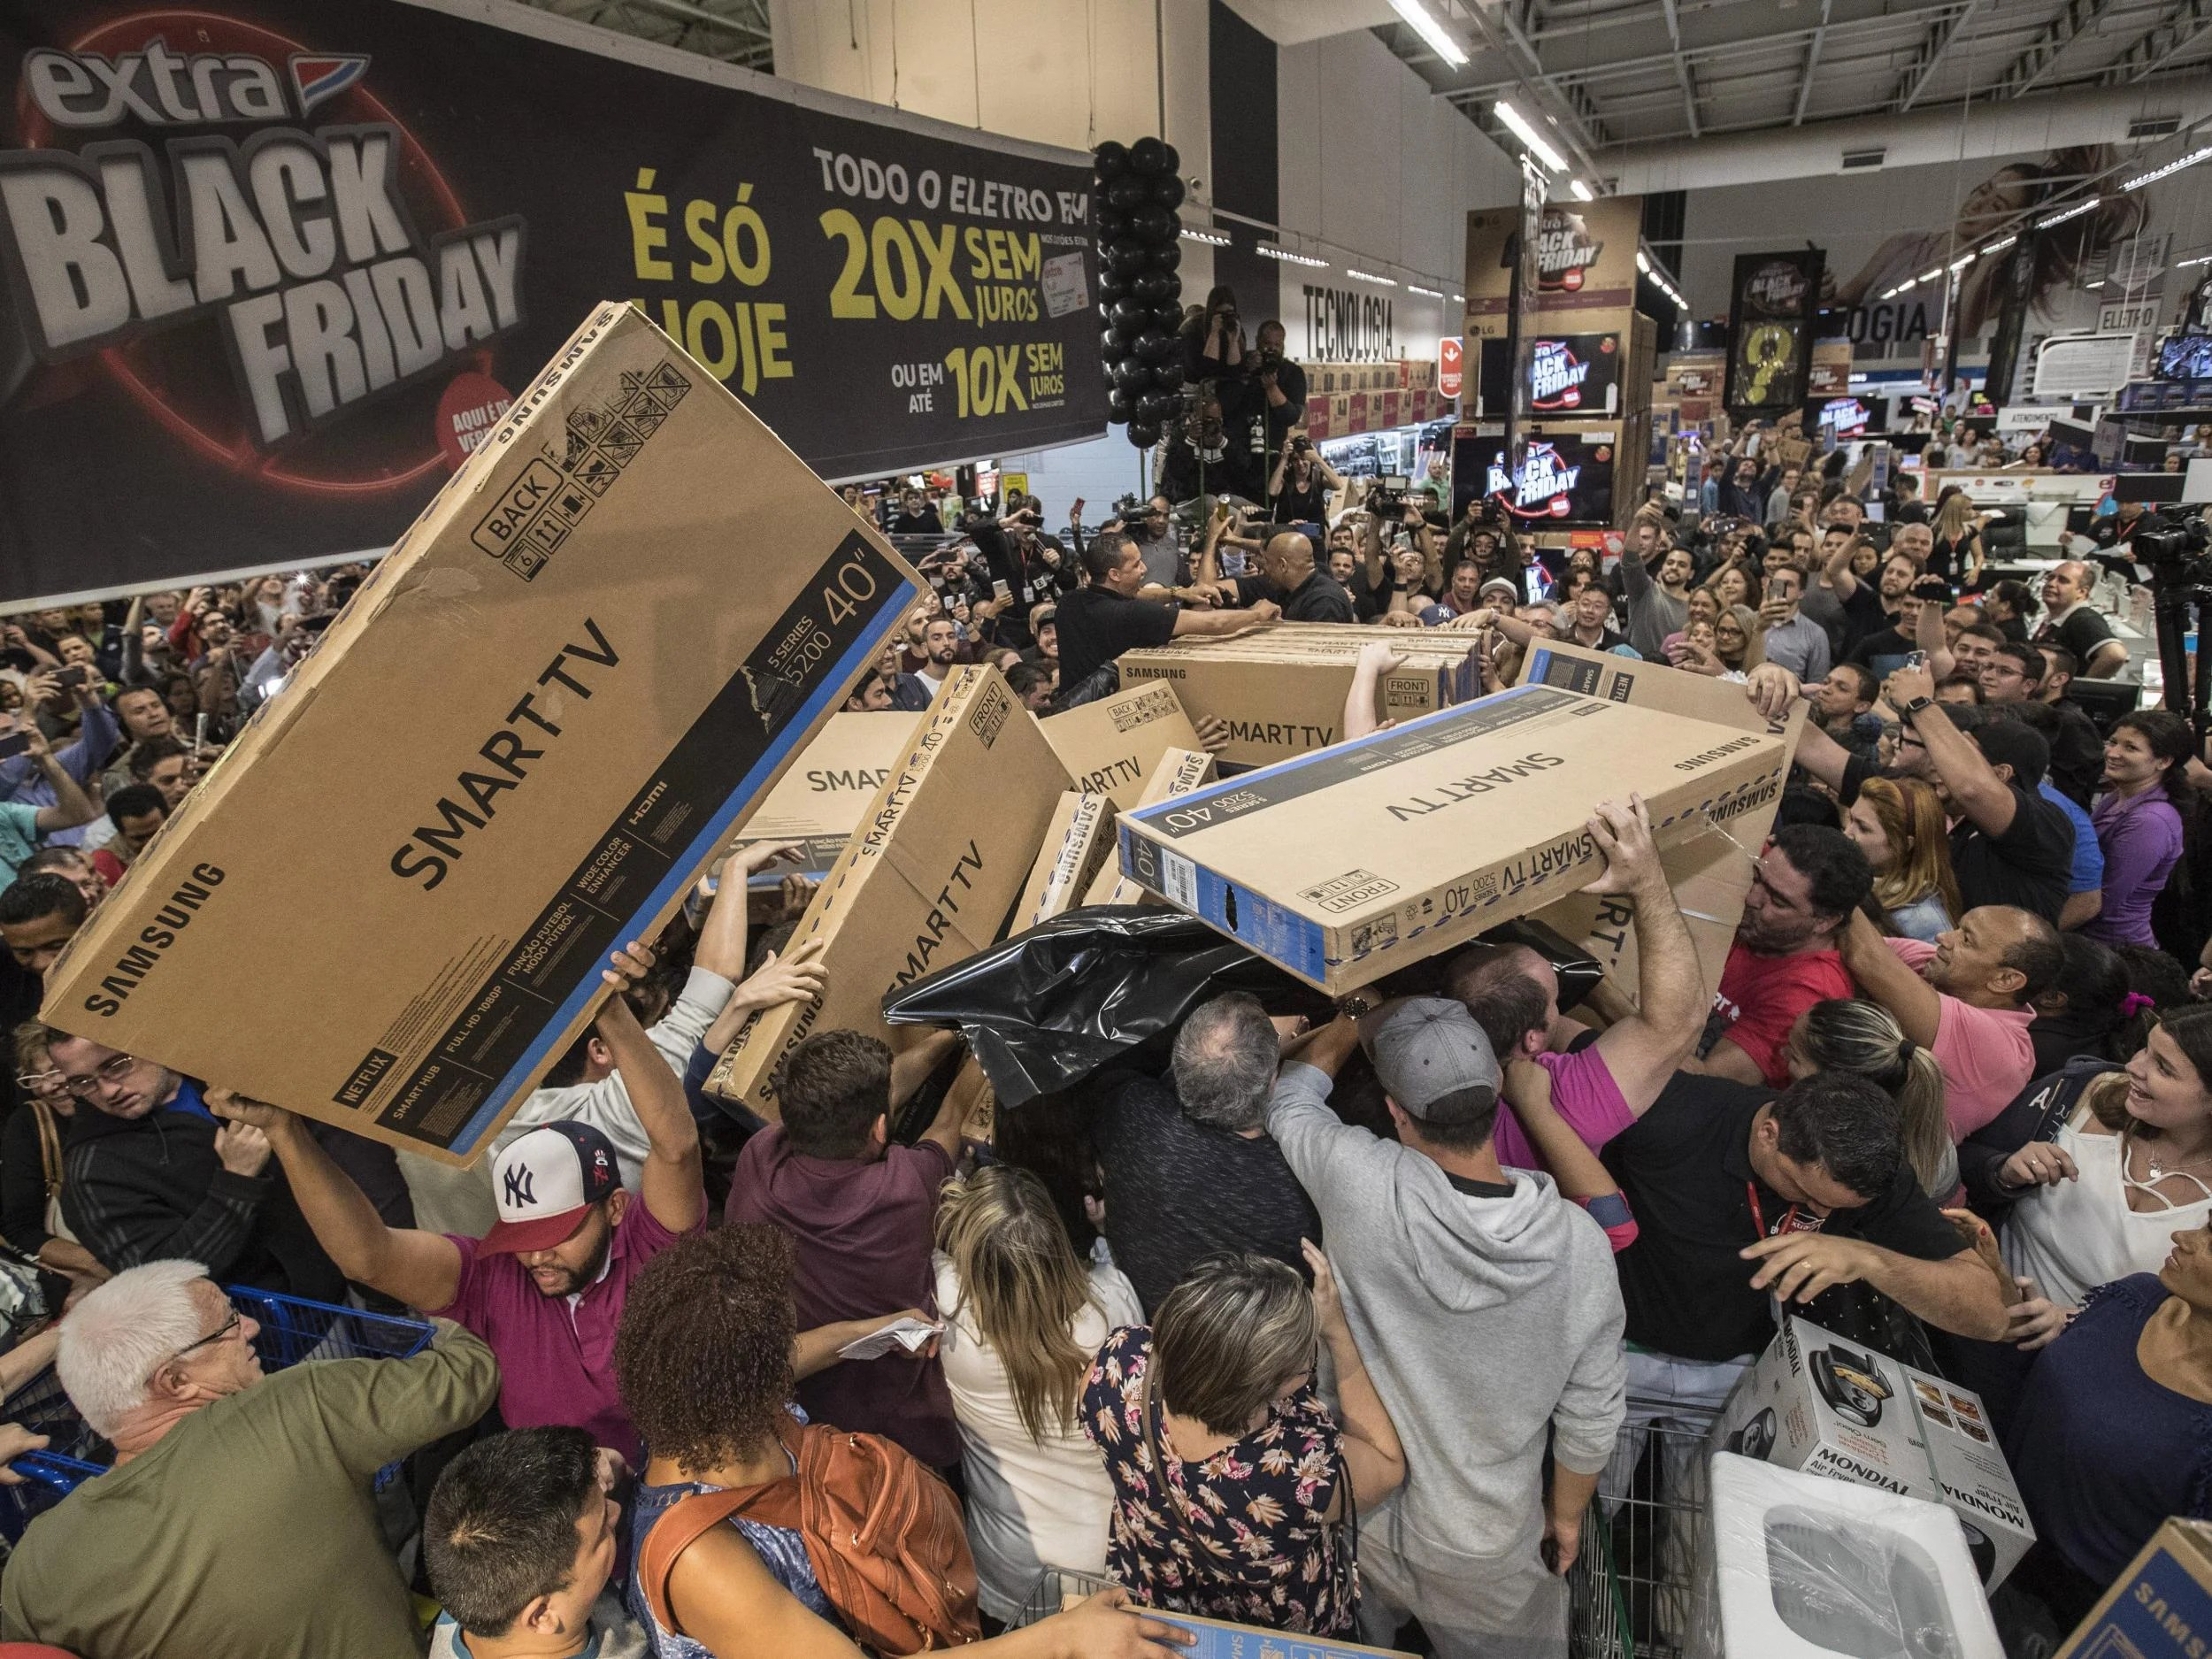 Black Friday 2017 Chaos As Huge Crowds Of Shoppers In